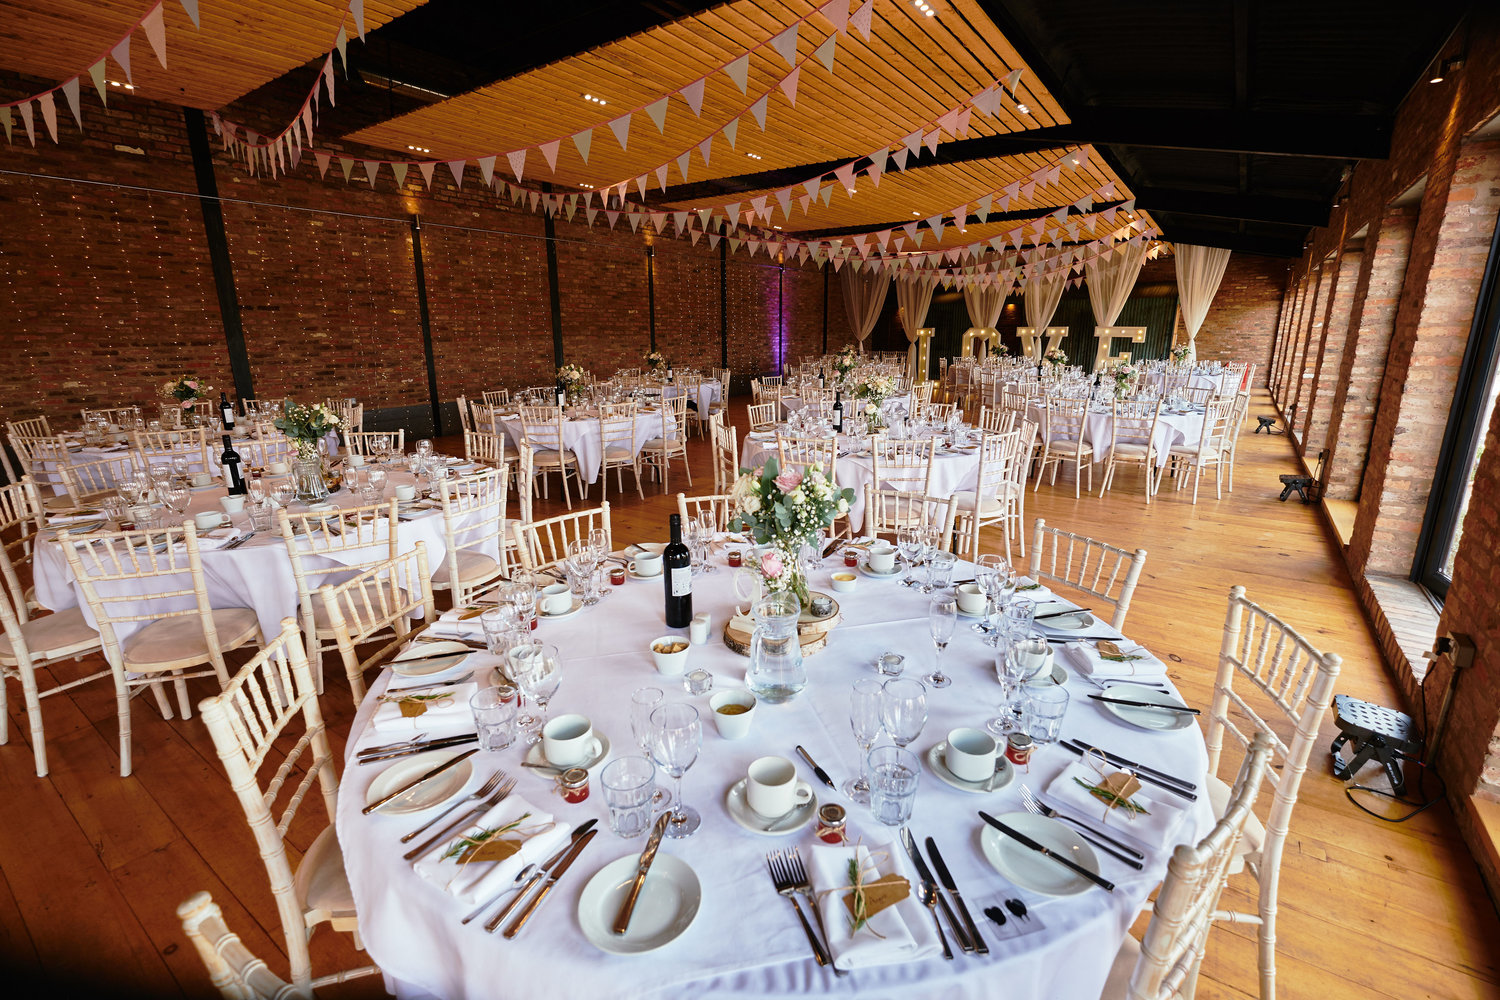 Romantic, rustic wedding venue at Norton Fields in Leicestershire | Upper Rectory Farm Cottages